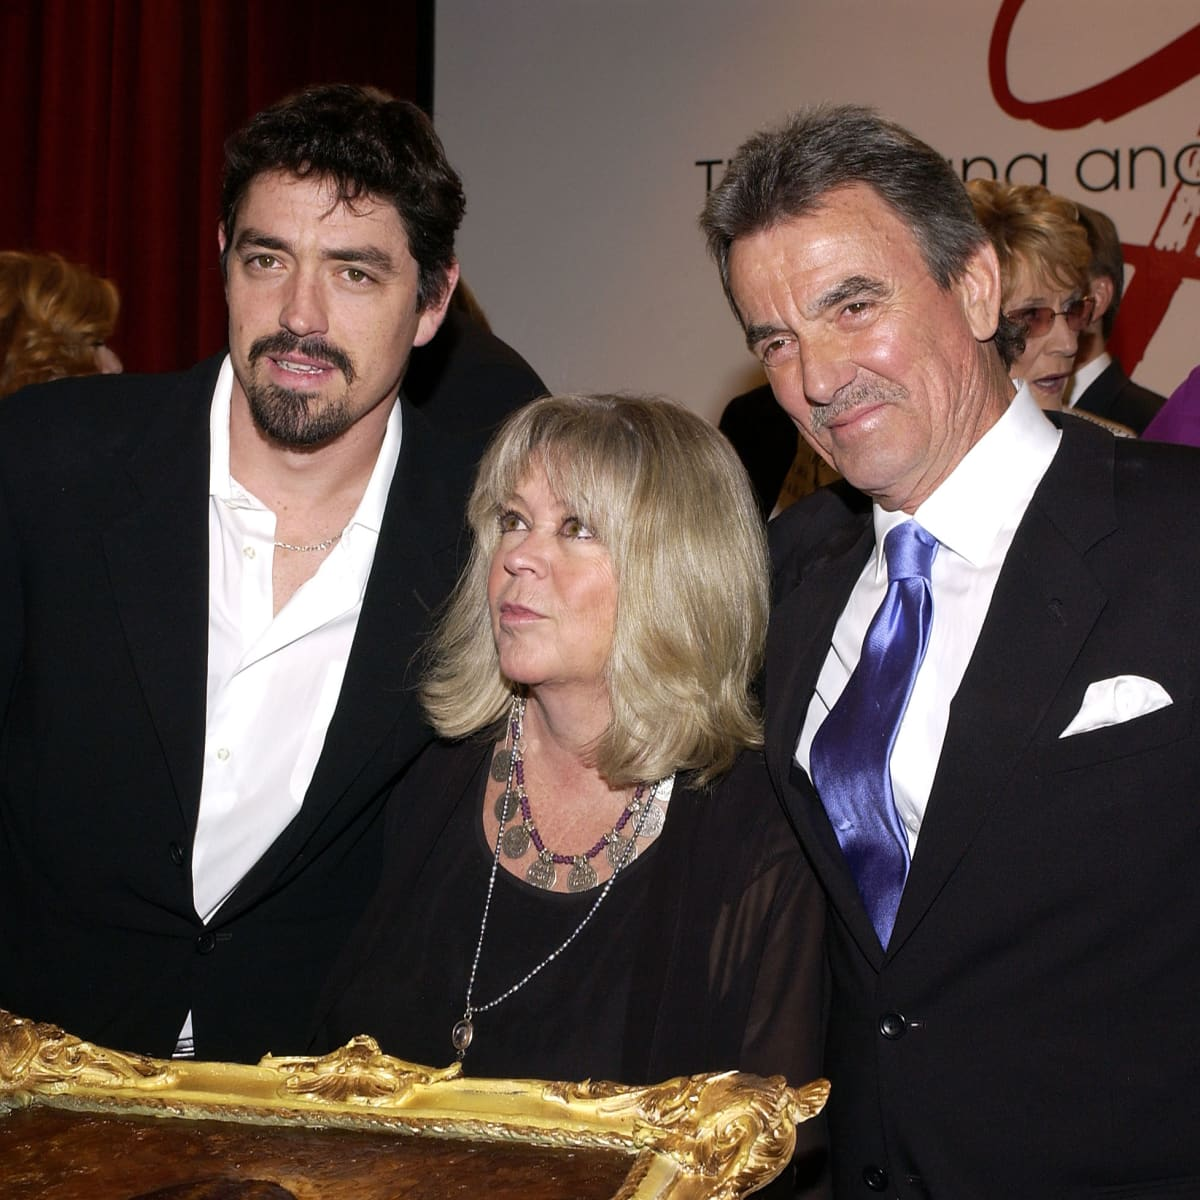 The Young And The Restless This Is Eric Braeden S Gorgeous Wife Dale She's an actress as well who's best known for her role in holiday in the sun. the young and the restless this is